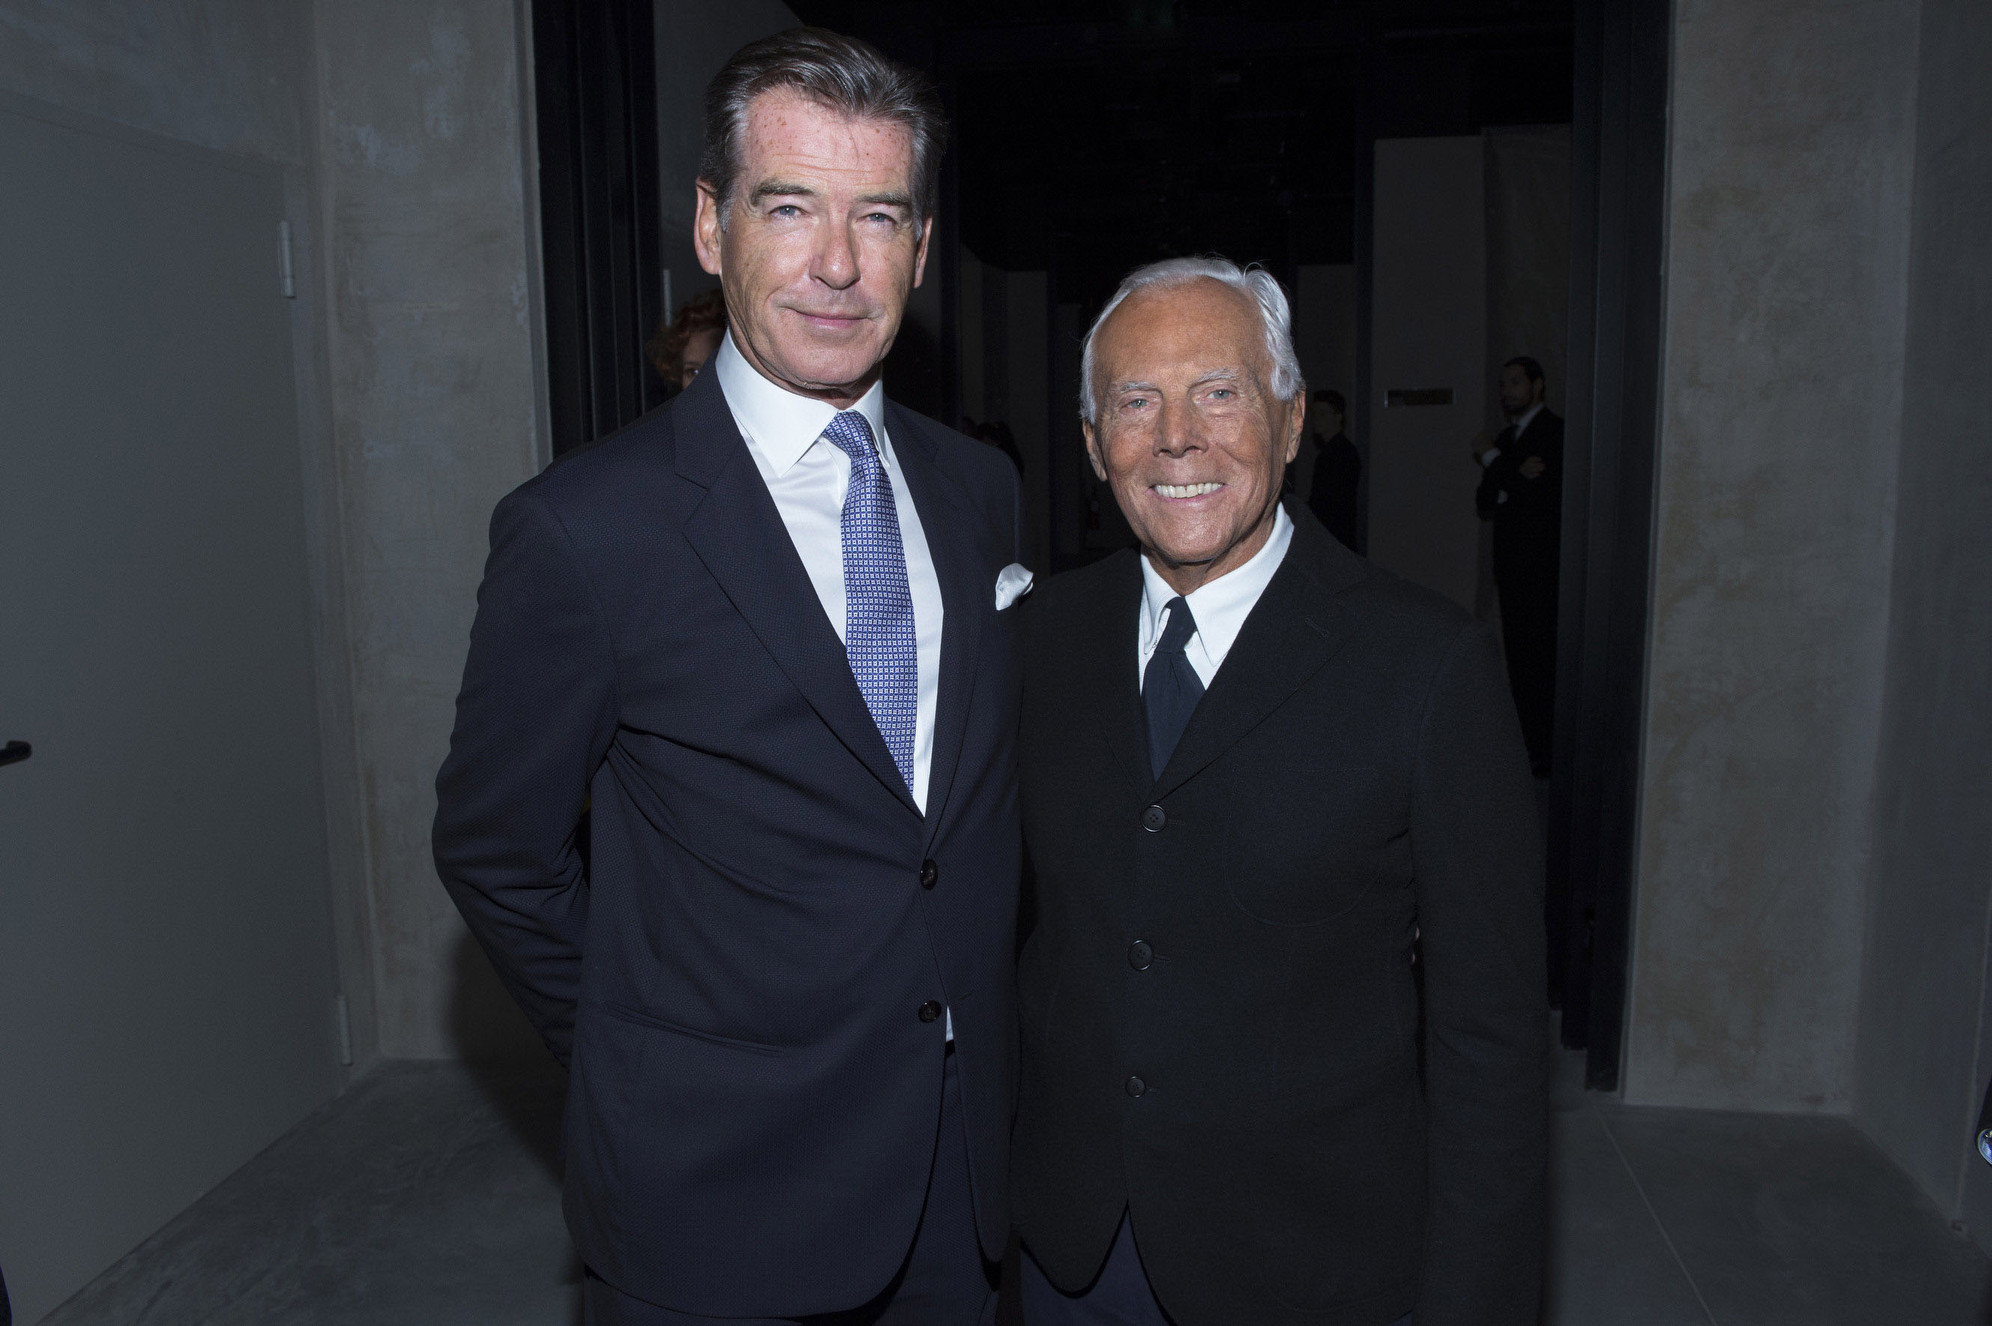 Pierce Brosnan and Giorgio Armani